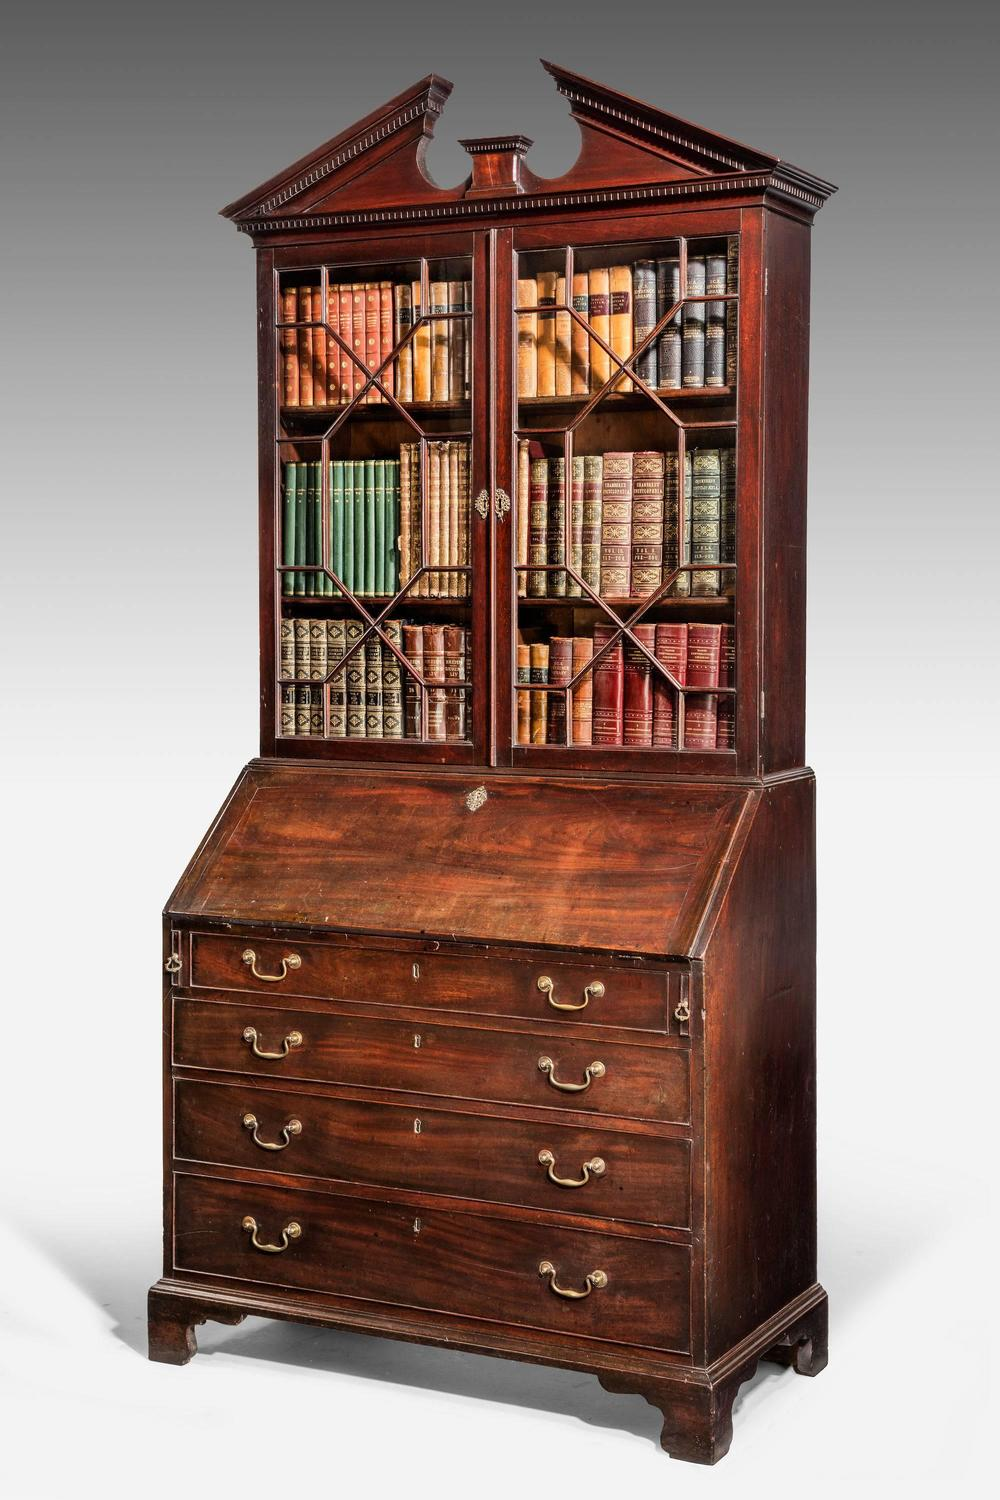 george iii period mahogany bureau bookcase at 1stdibs. Black Bedroom Furniture Sets. Home Design Ideas